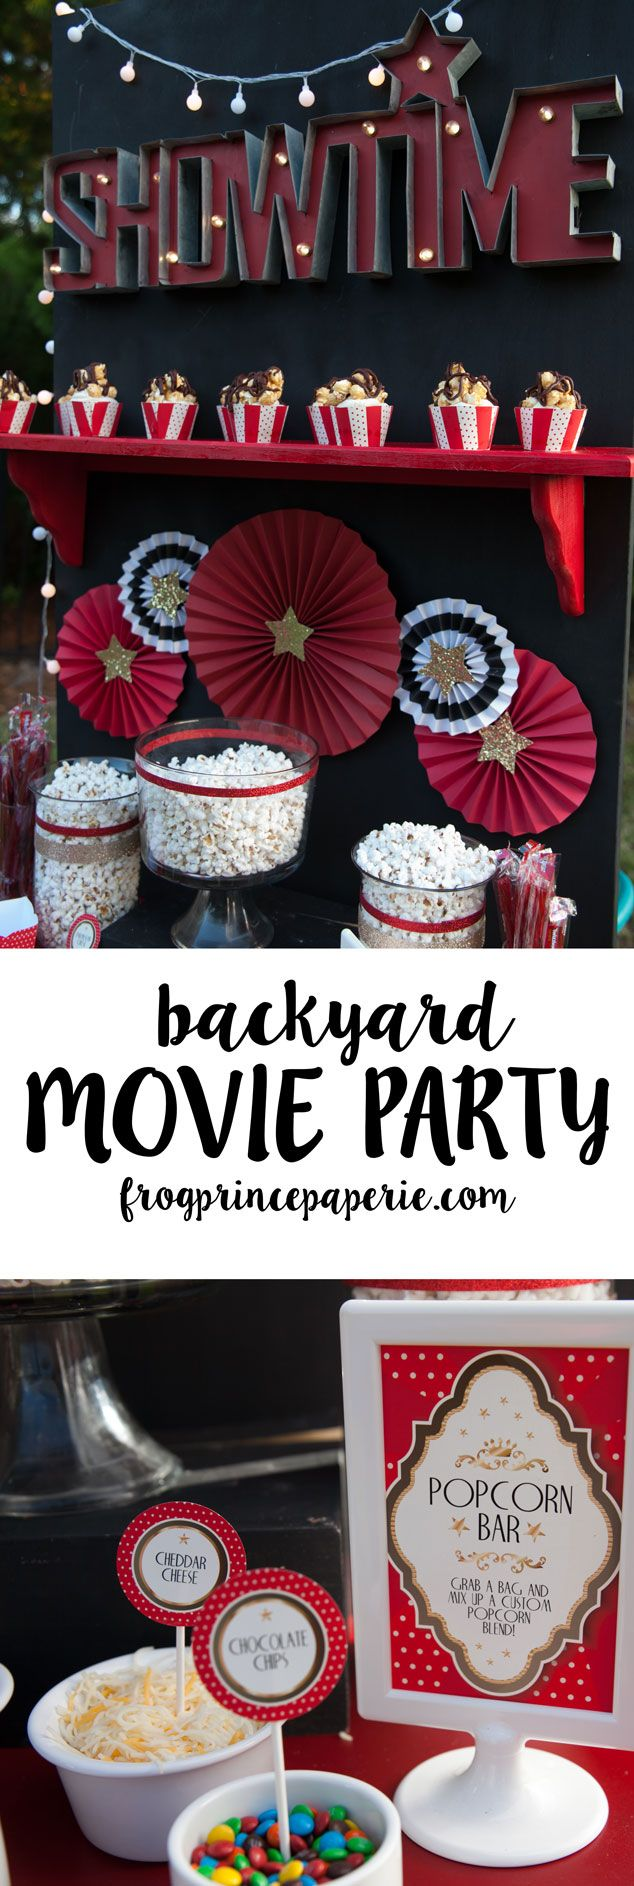 Best 20+ Special events ideas on Pinterest | Party lights ...